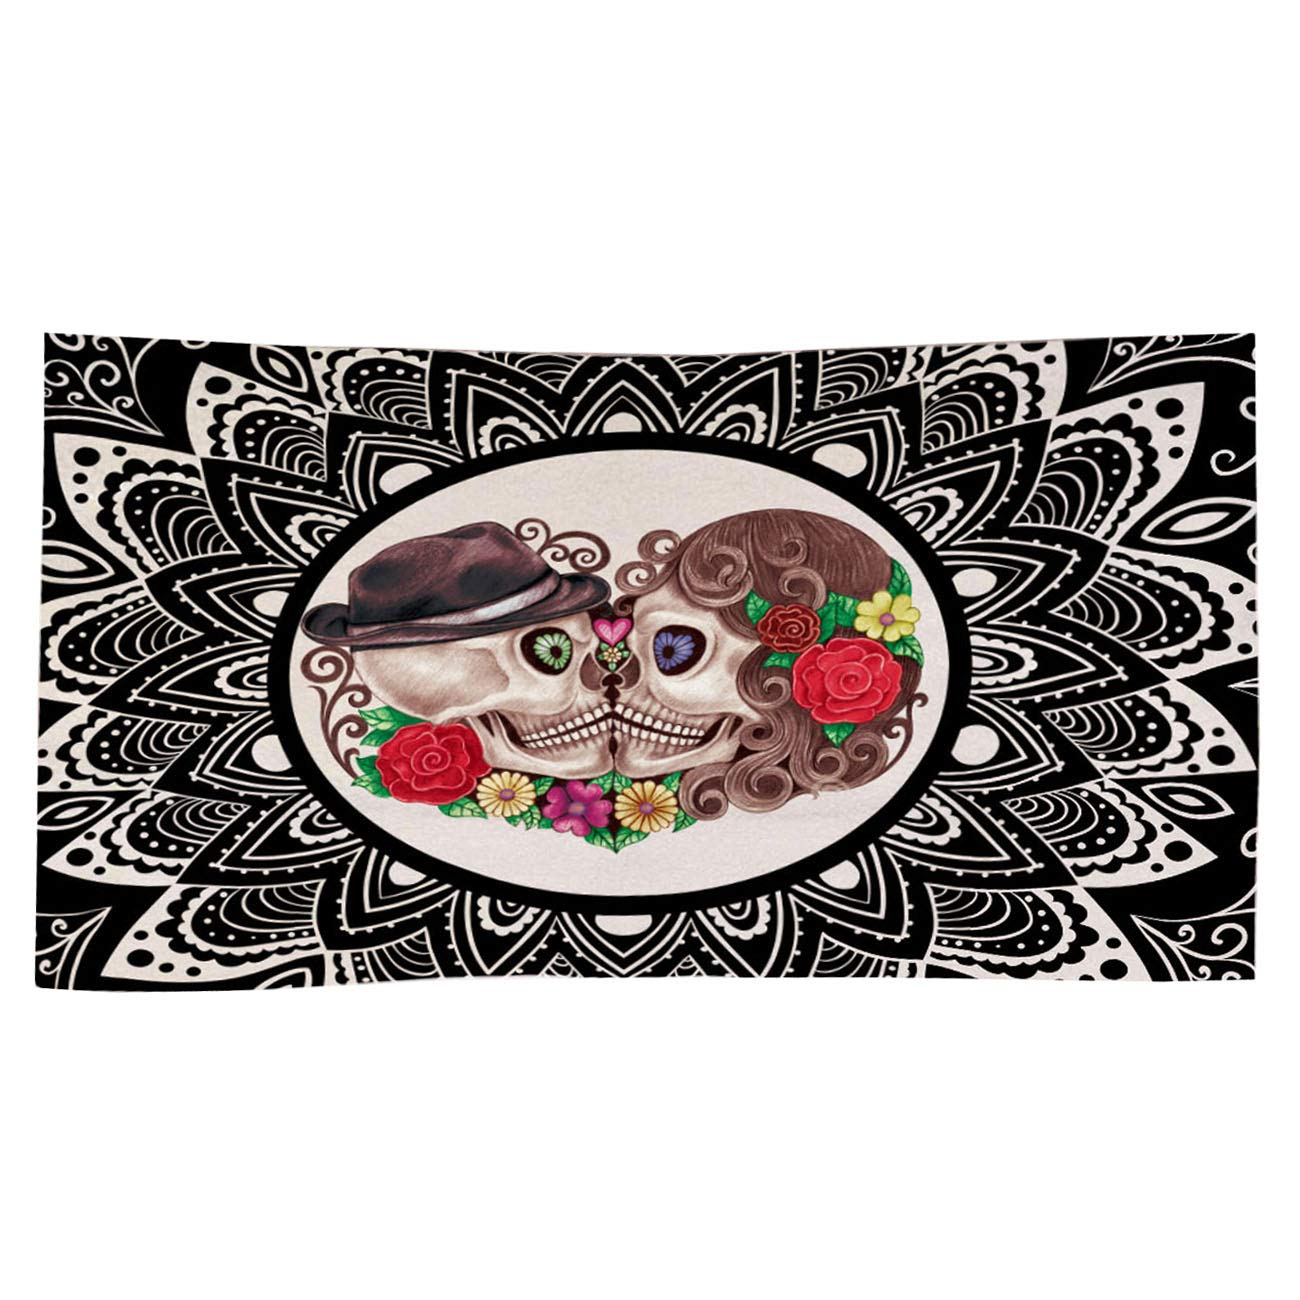 Mexican Floral Sugar Skull Dia De Los Muertos Beach Towel Unique Creative Square Microfiber Shower/Bath/ Pool Towel (Polyester Fiber) YangMing